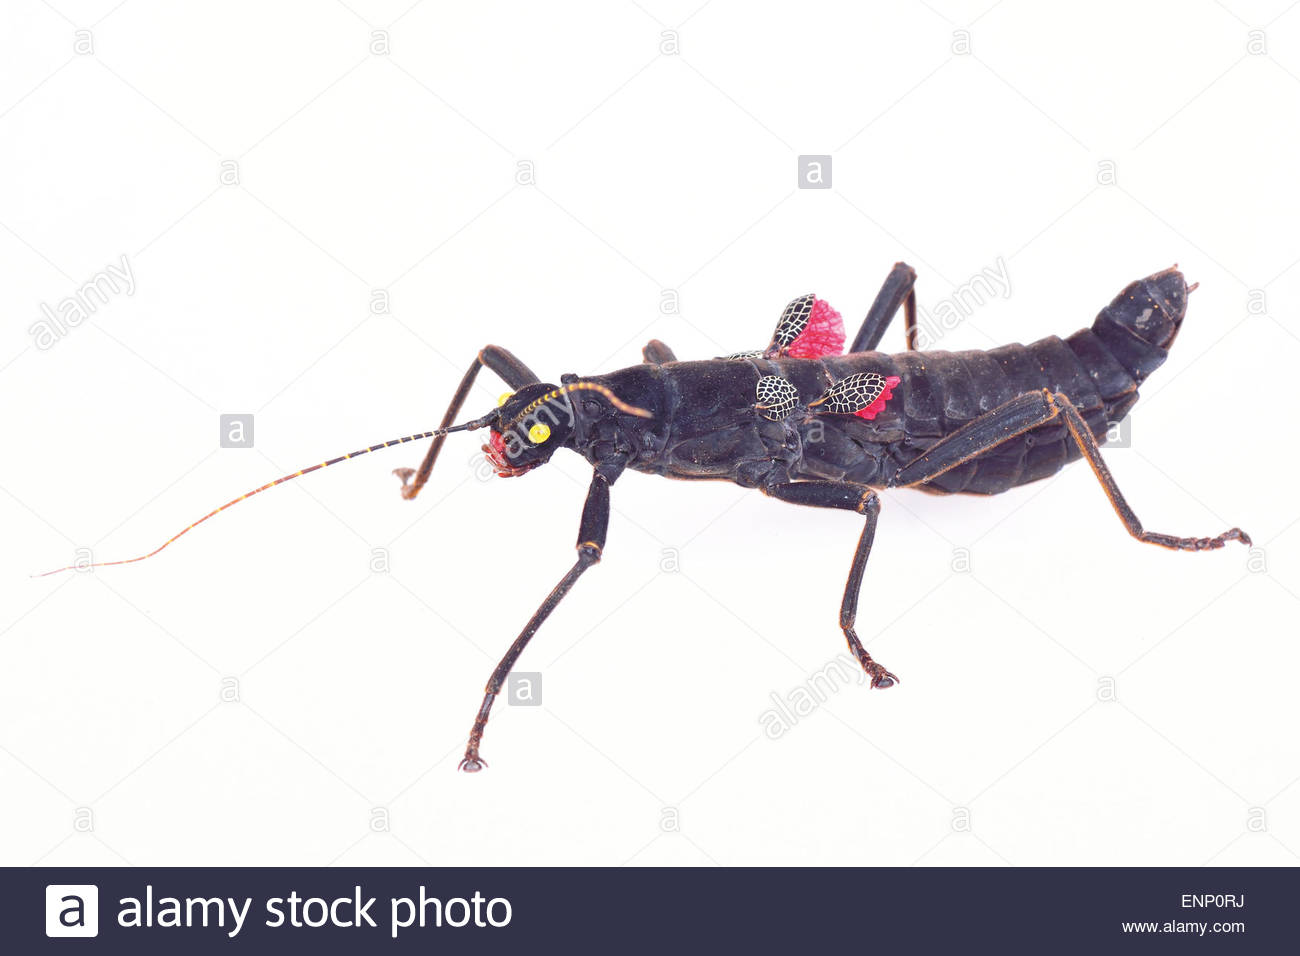 Black Phasmatodea with red wings on a white background Stock Photo 1300x956